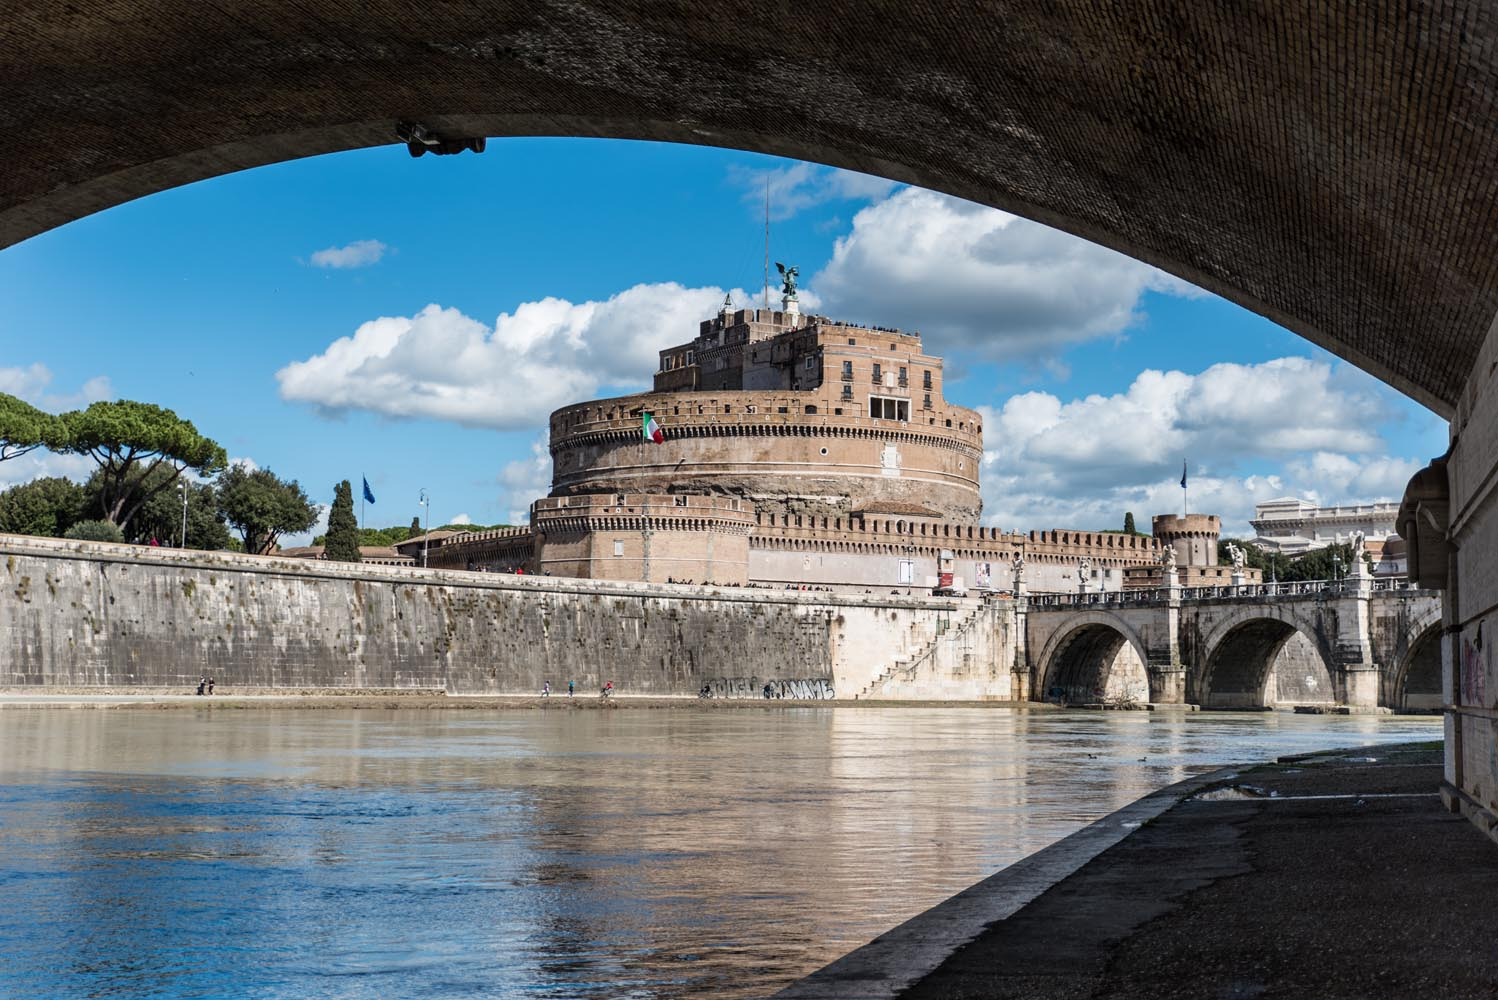 Castle Sant'Angelo from the Tiber River